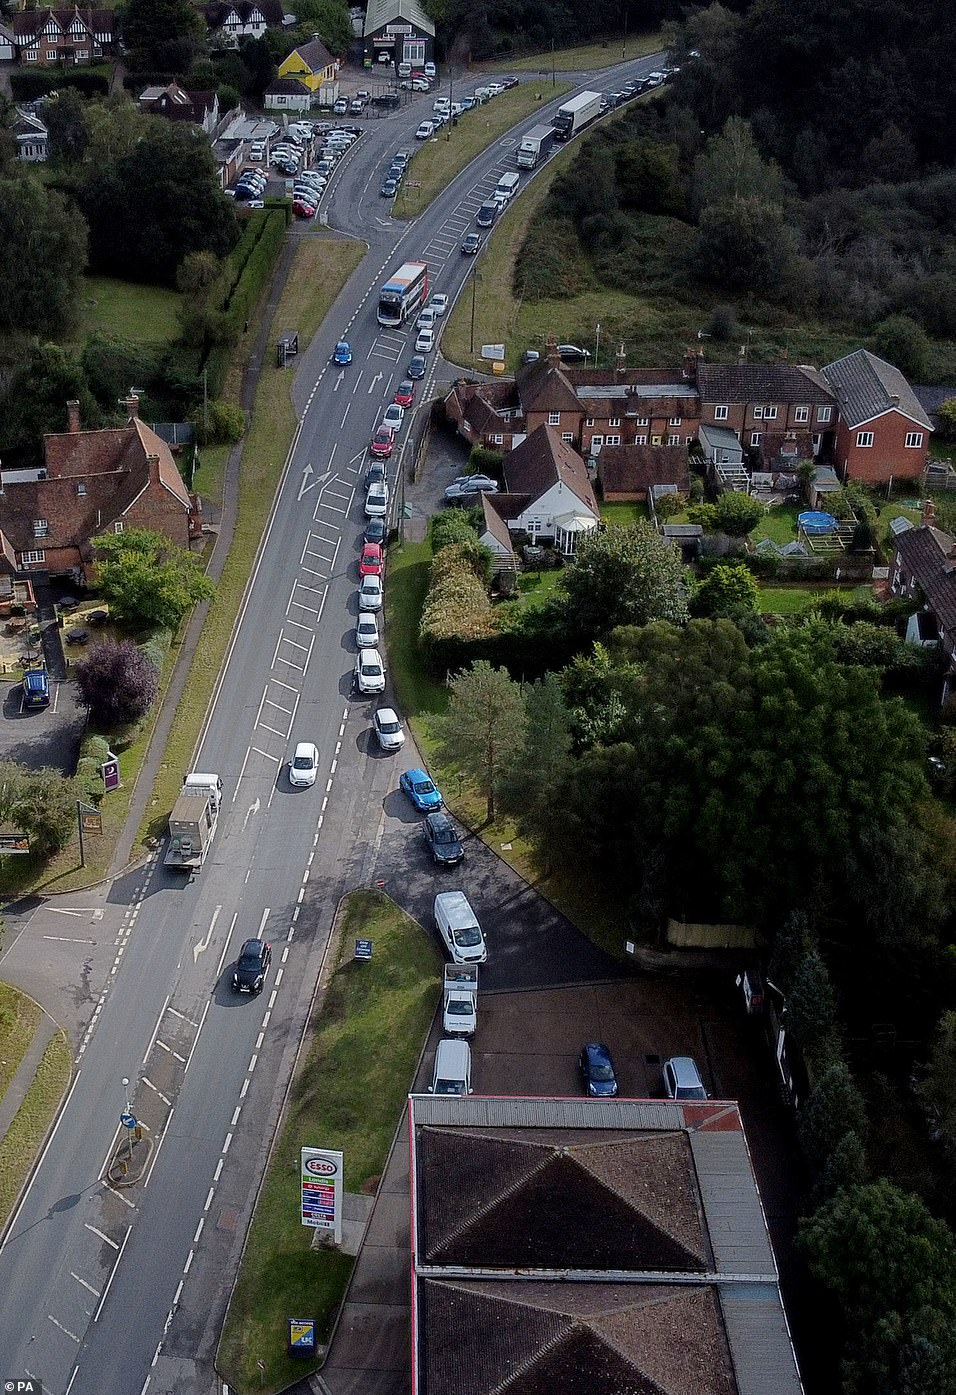 The South East is still in the grip of a fuel crisis despite Transport Secretary Grant Shapps today claiming supply levels are 'close to normal range'. Pictured: Queues for Esso in Ashford